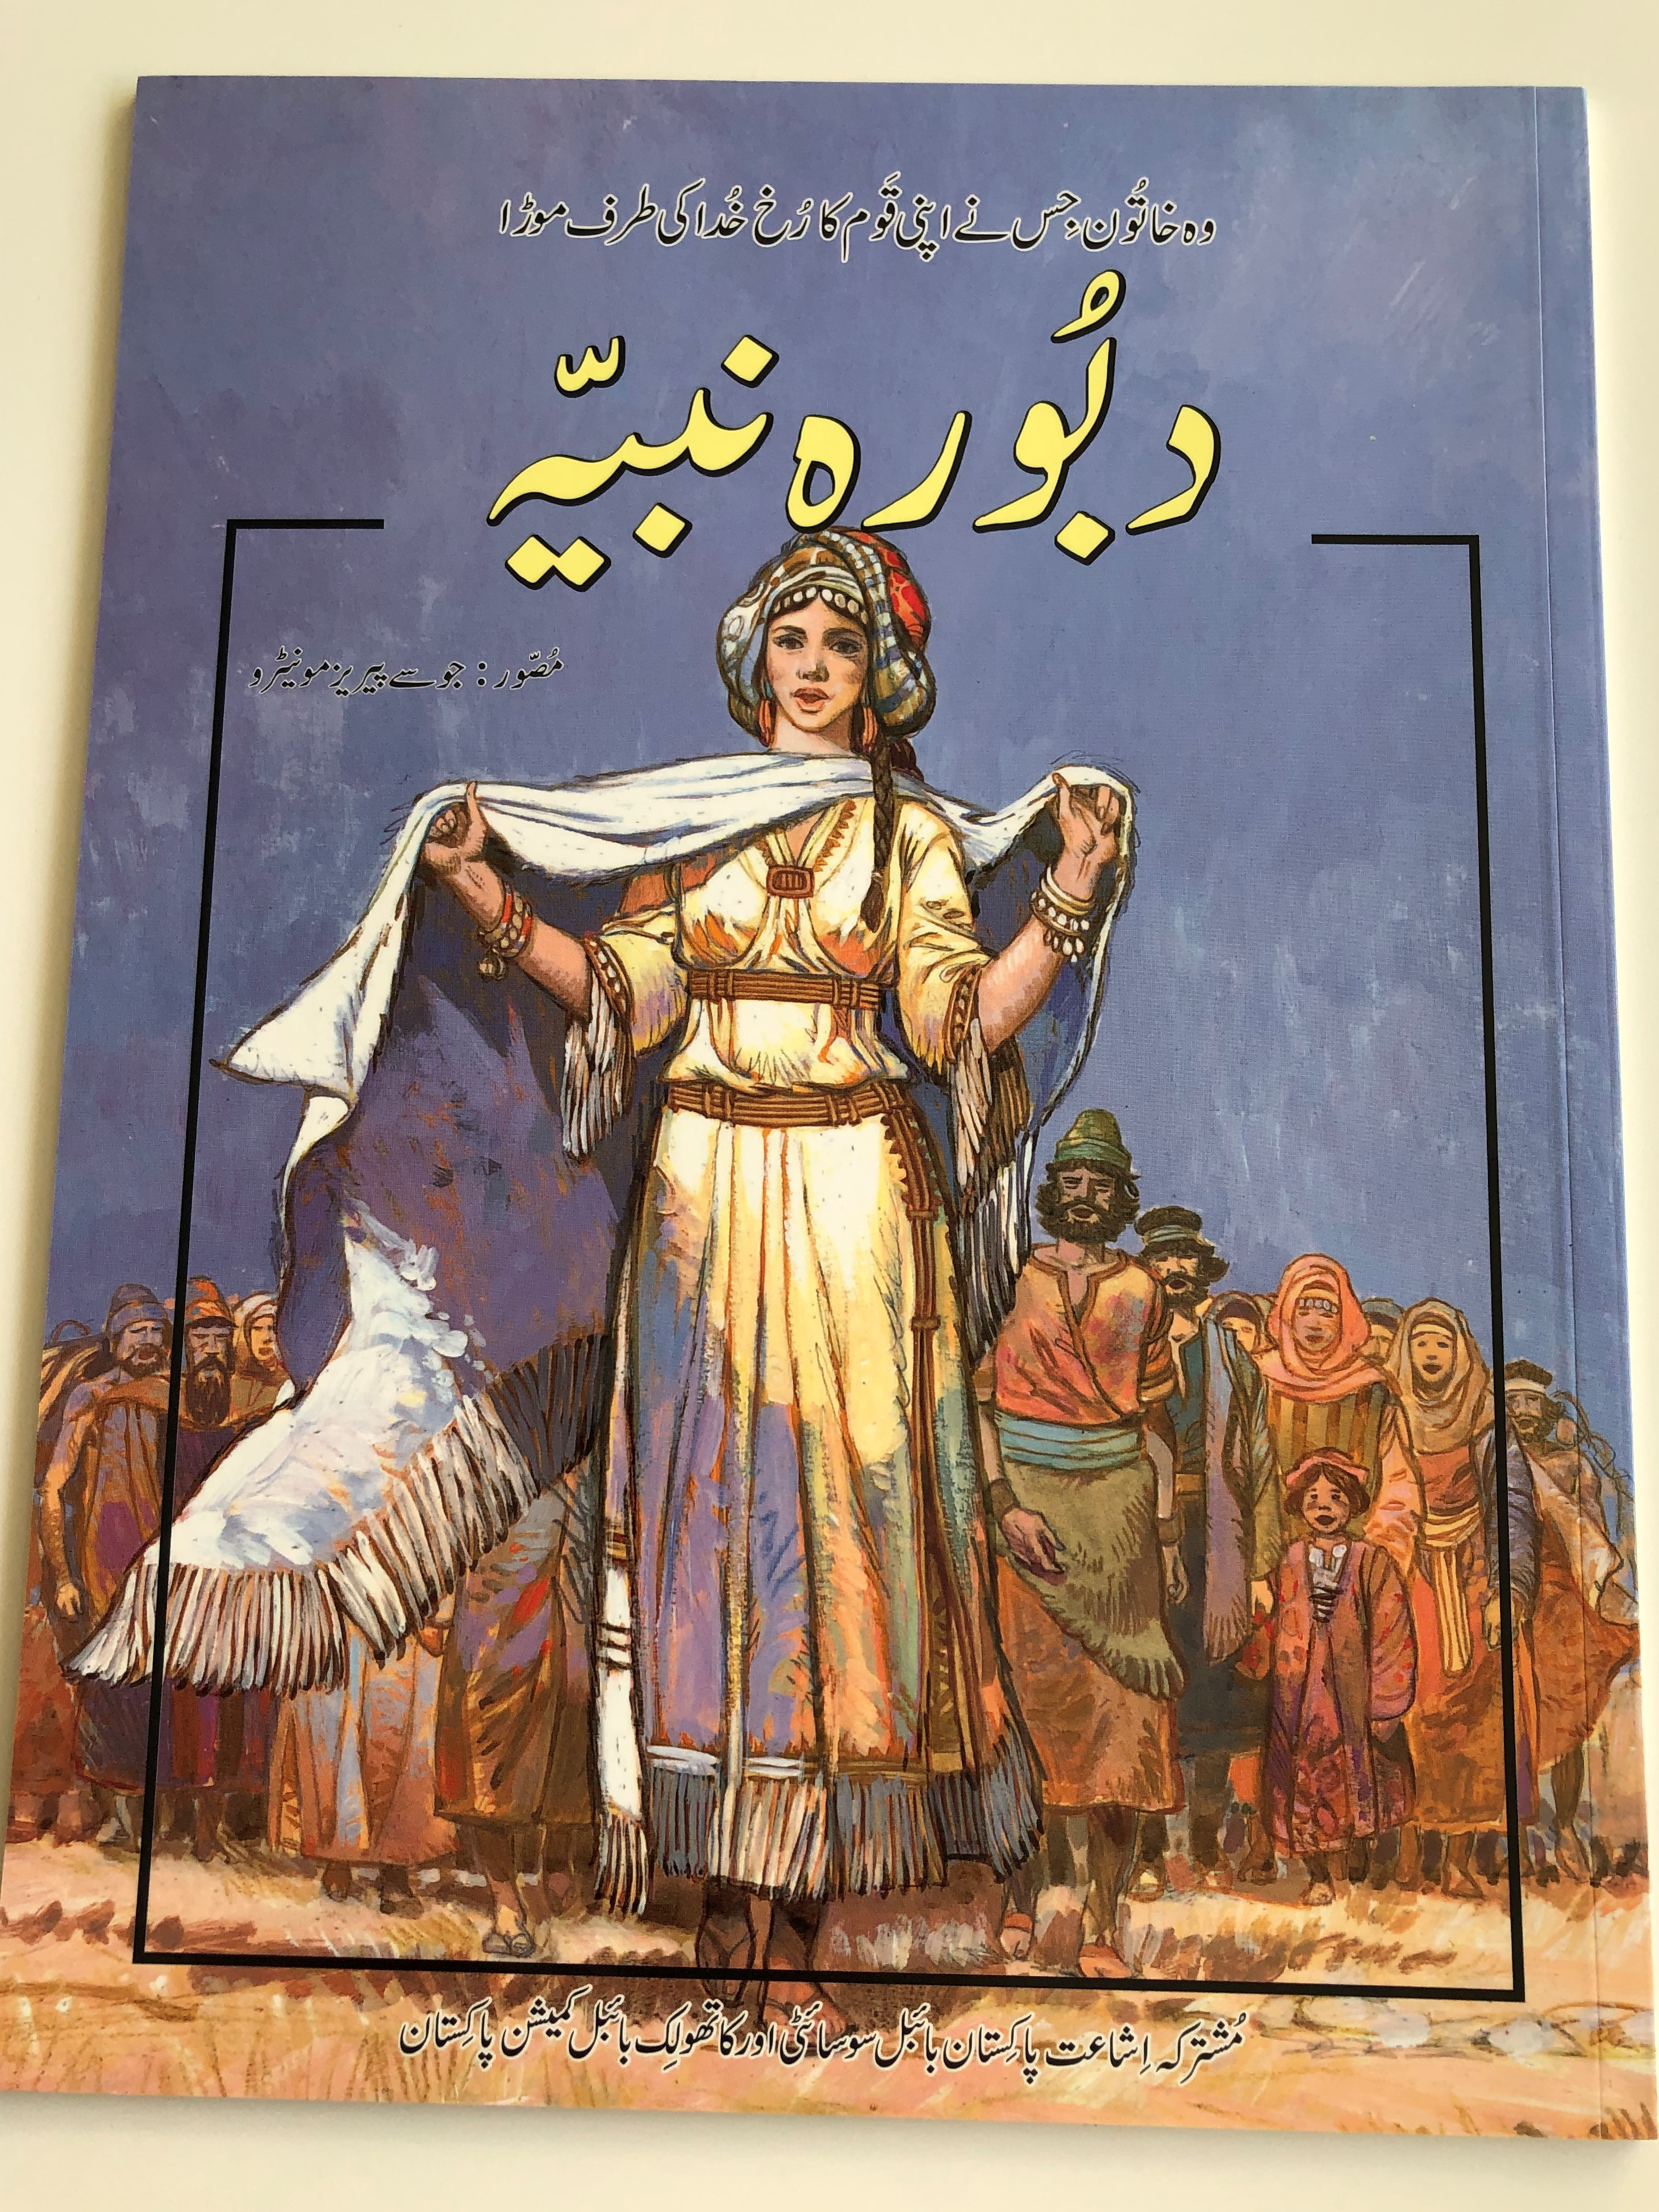 deborah-a-woman-who-brought-an-entire-nation-back-to-god-urdu-1.jpg